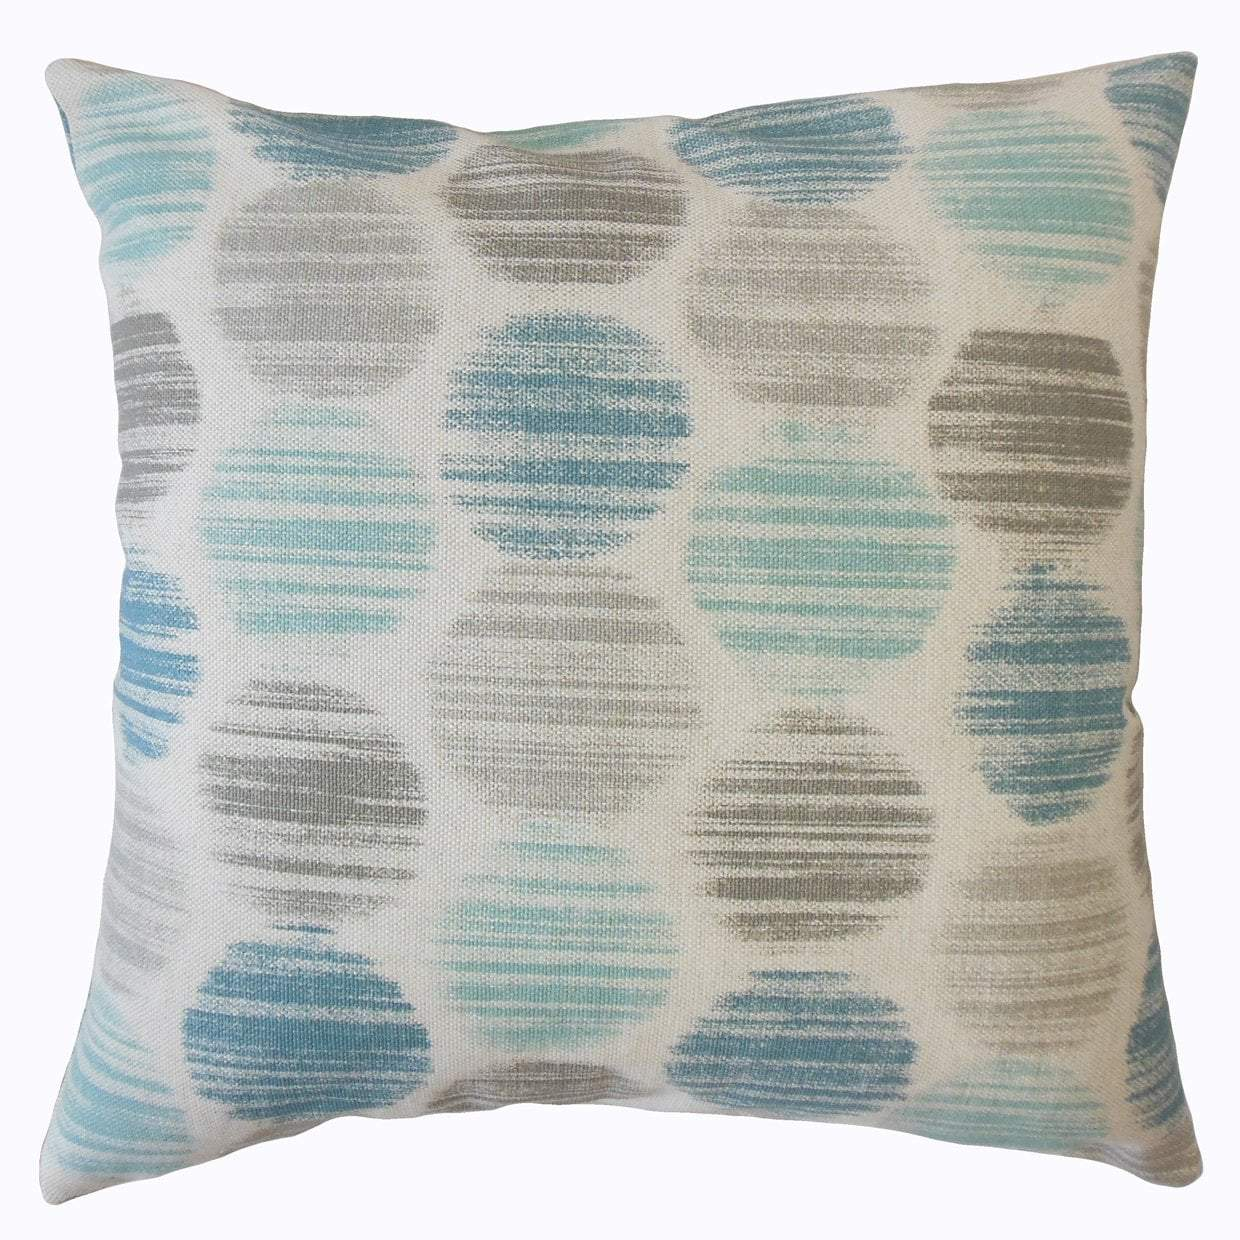 Blue Cotton Polka Dot Contemporary Throw Pillow Cover